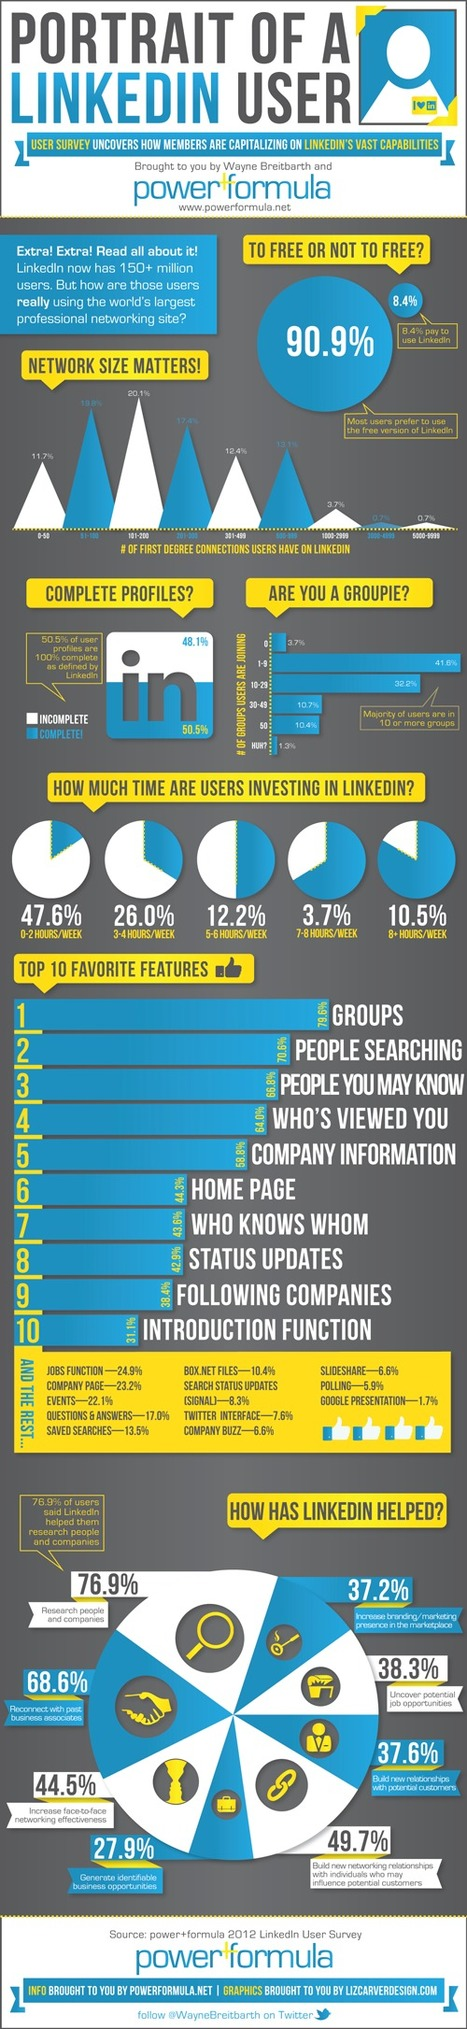 How to Harness the Power of LinkedIn - INFOGRAPHIC | Jeffbullas's Blog | Social media influence tips | Scoop.it